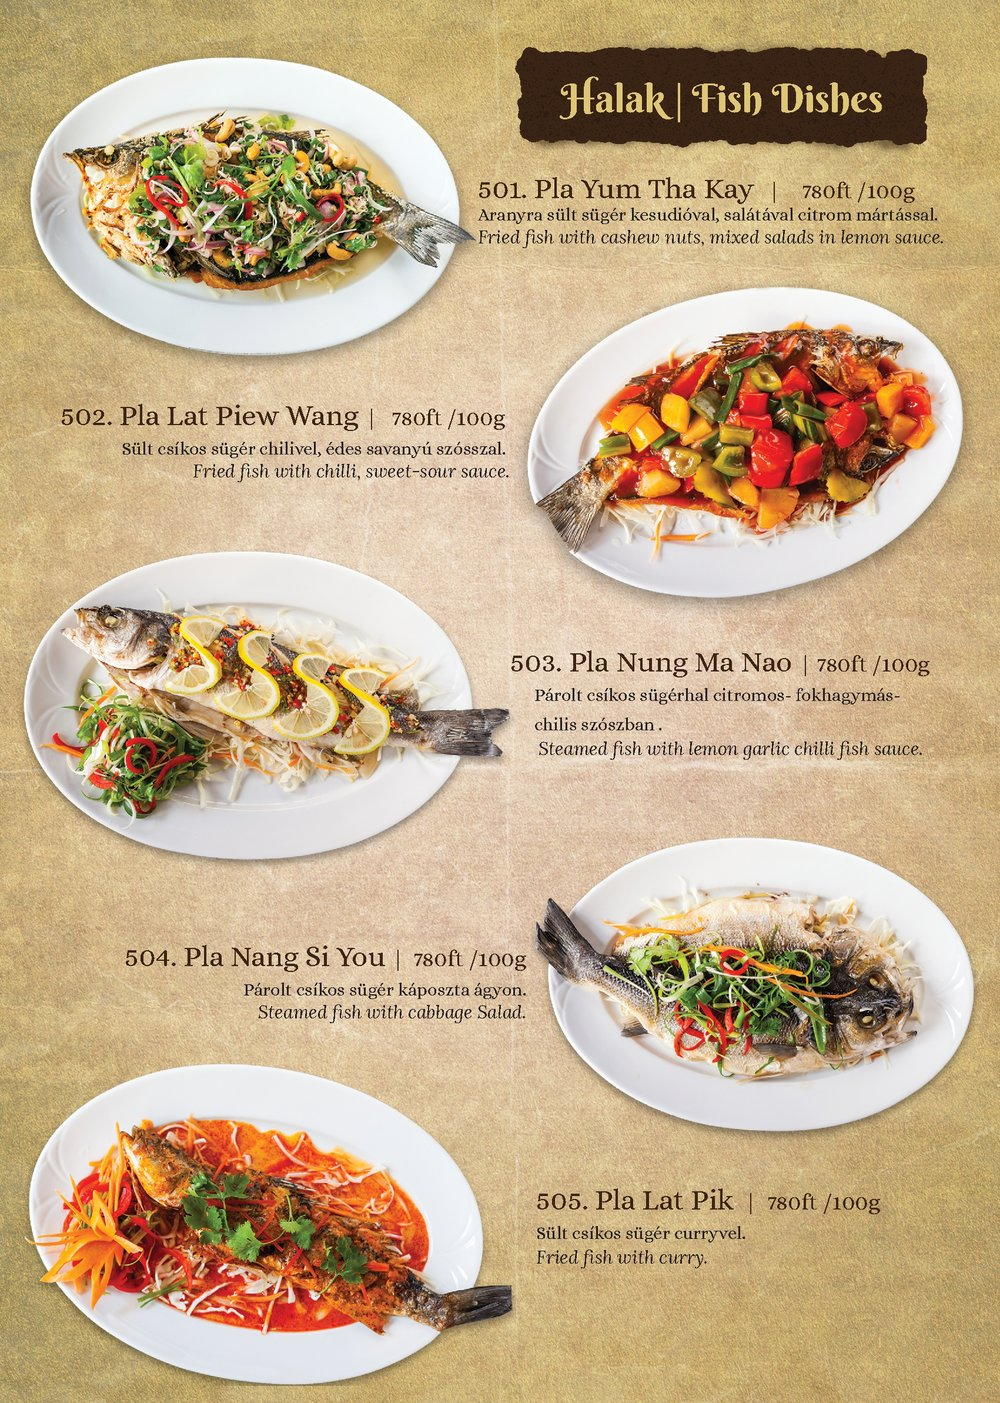 5.Sawasdee_menu_book-fish.0908.1.jpg